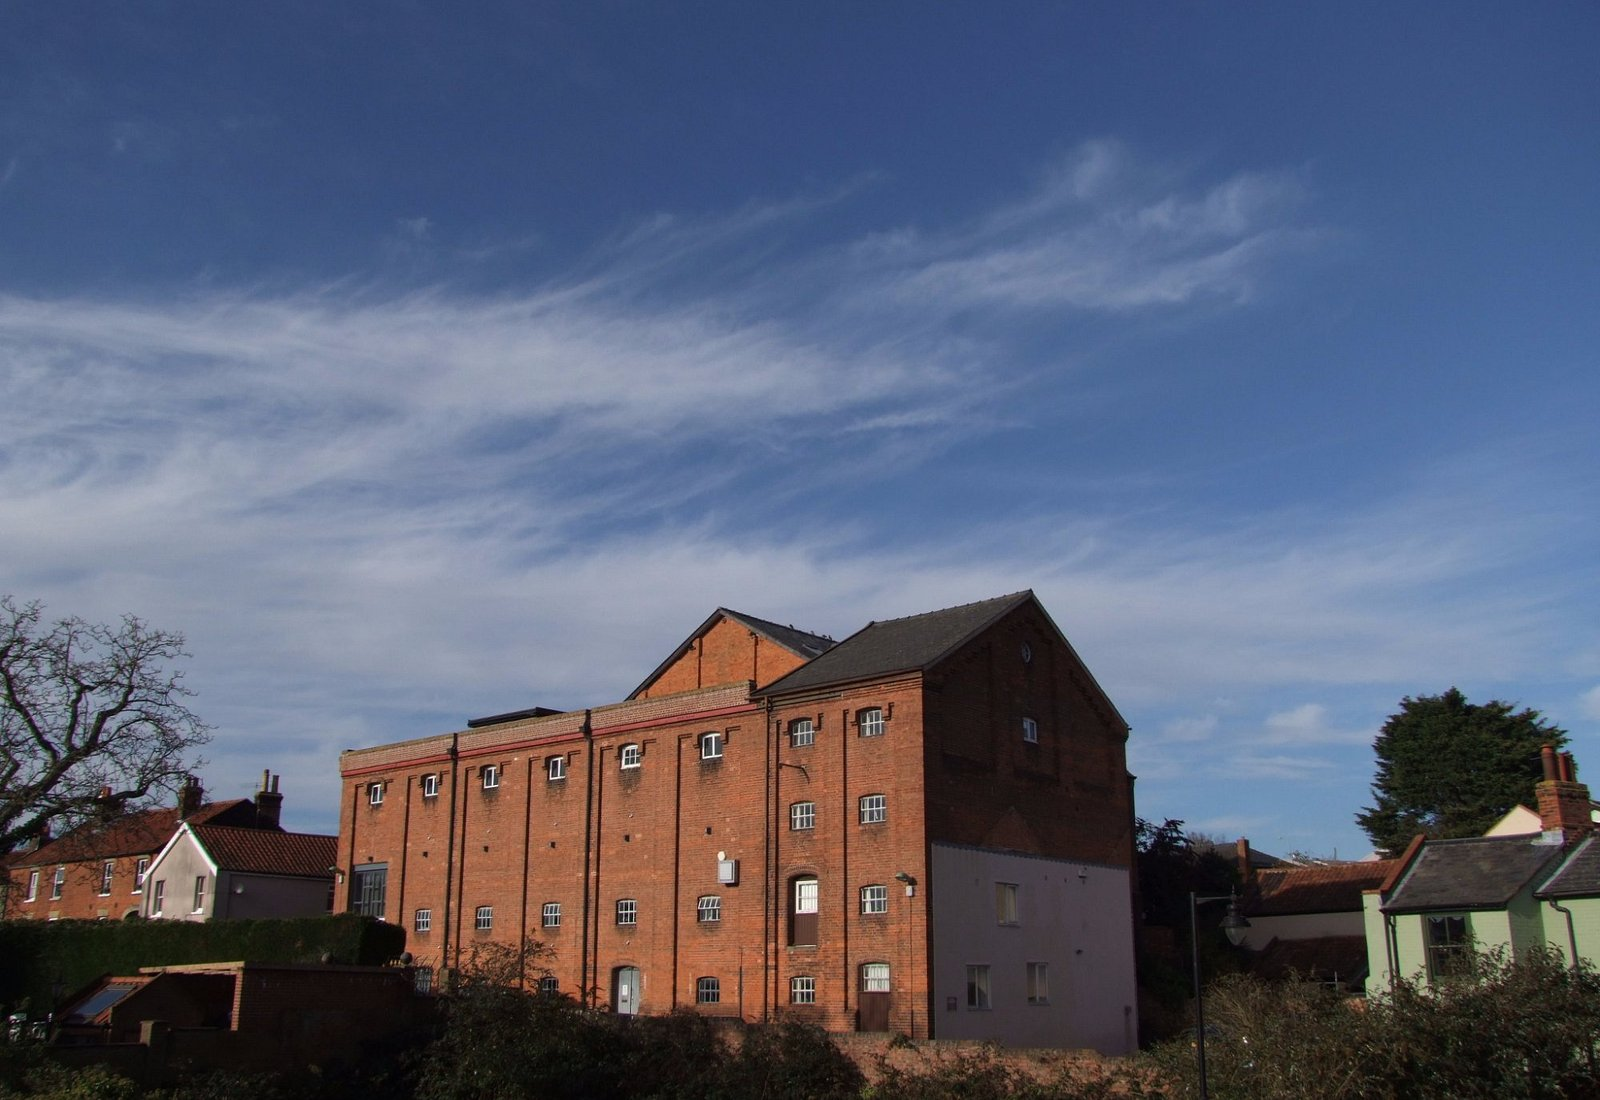 The Old Maltings seen from the bottom of Station Road